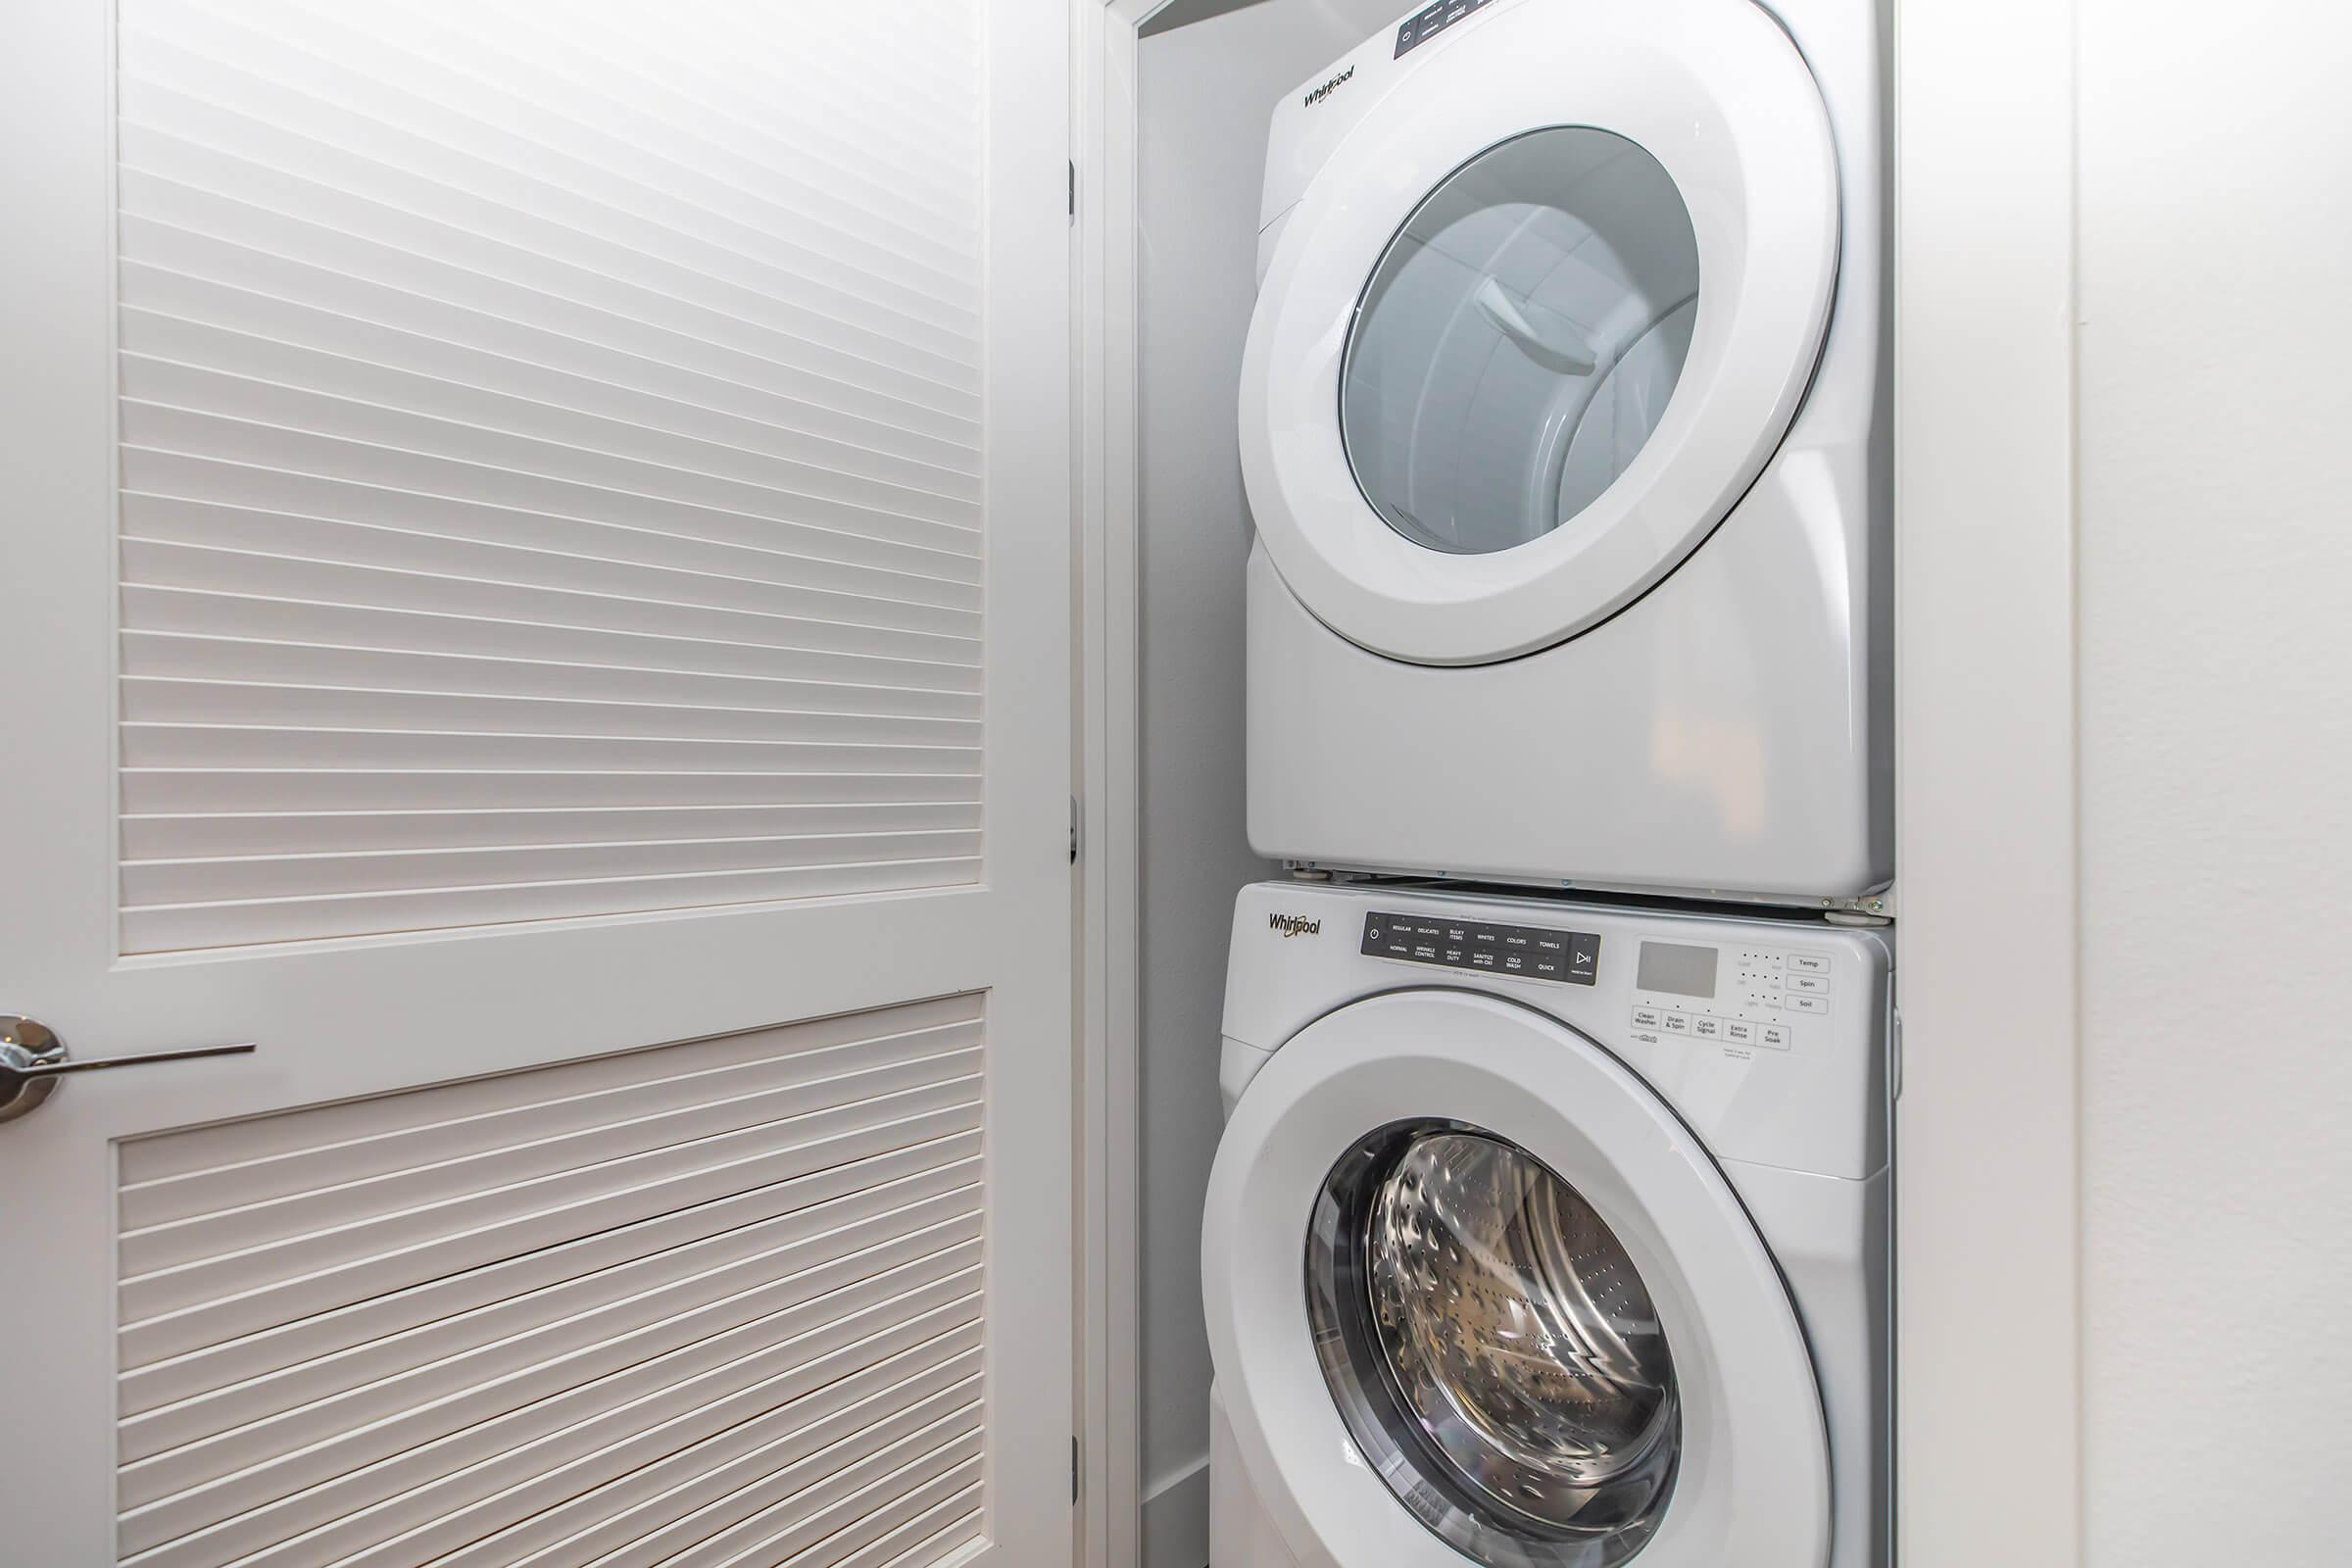 a washer in a small room